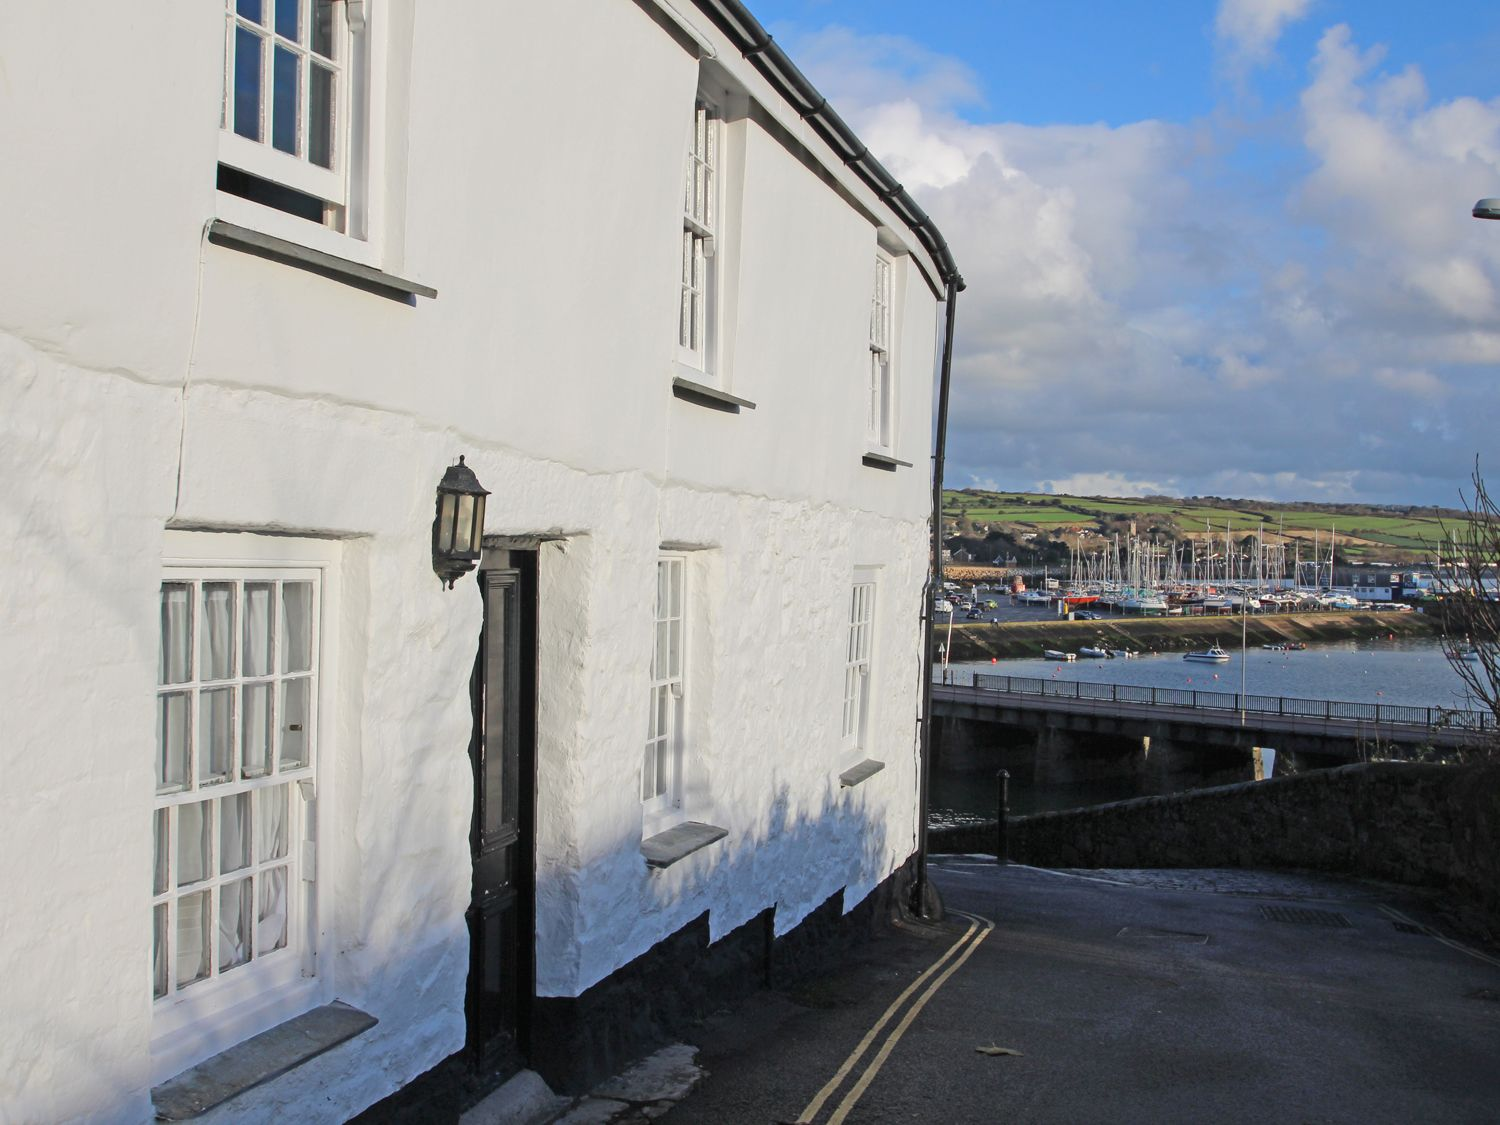 The Slipway, Penzance, Cornwall